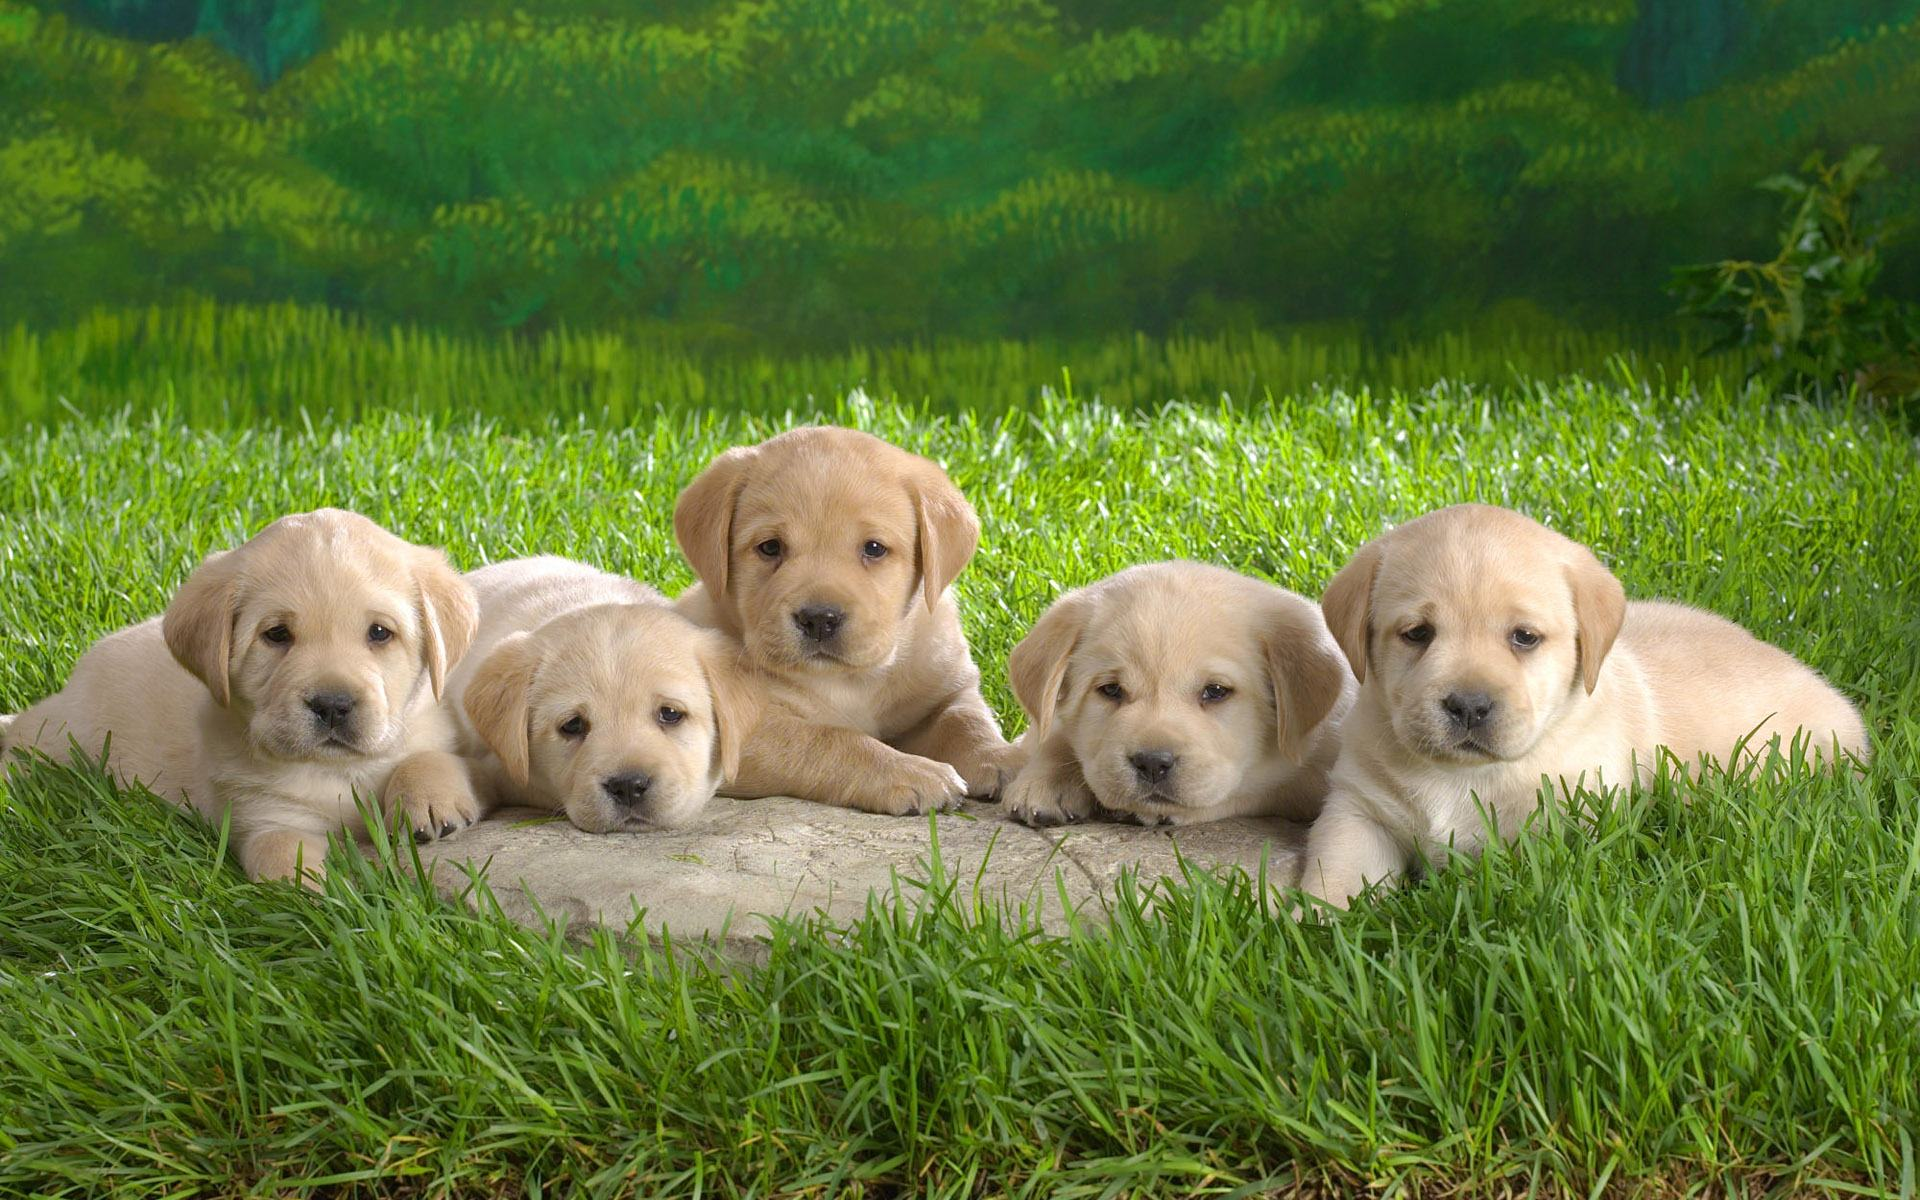 animals-Download-free-animals-Cute-Baby-Animals-wallpaper-wpc5802130